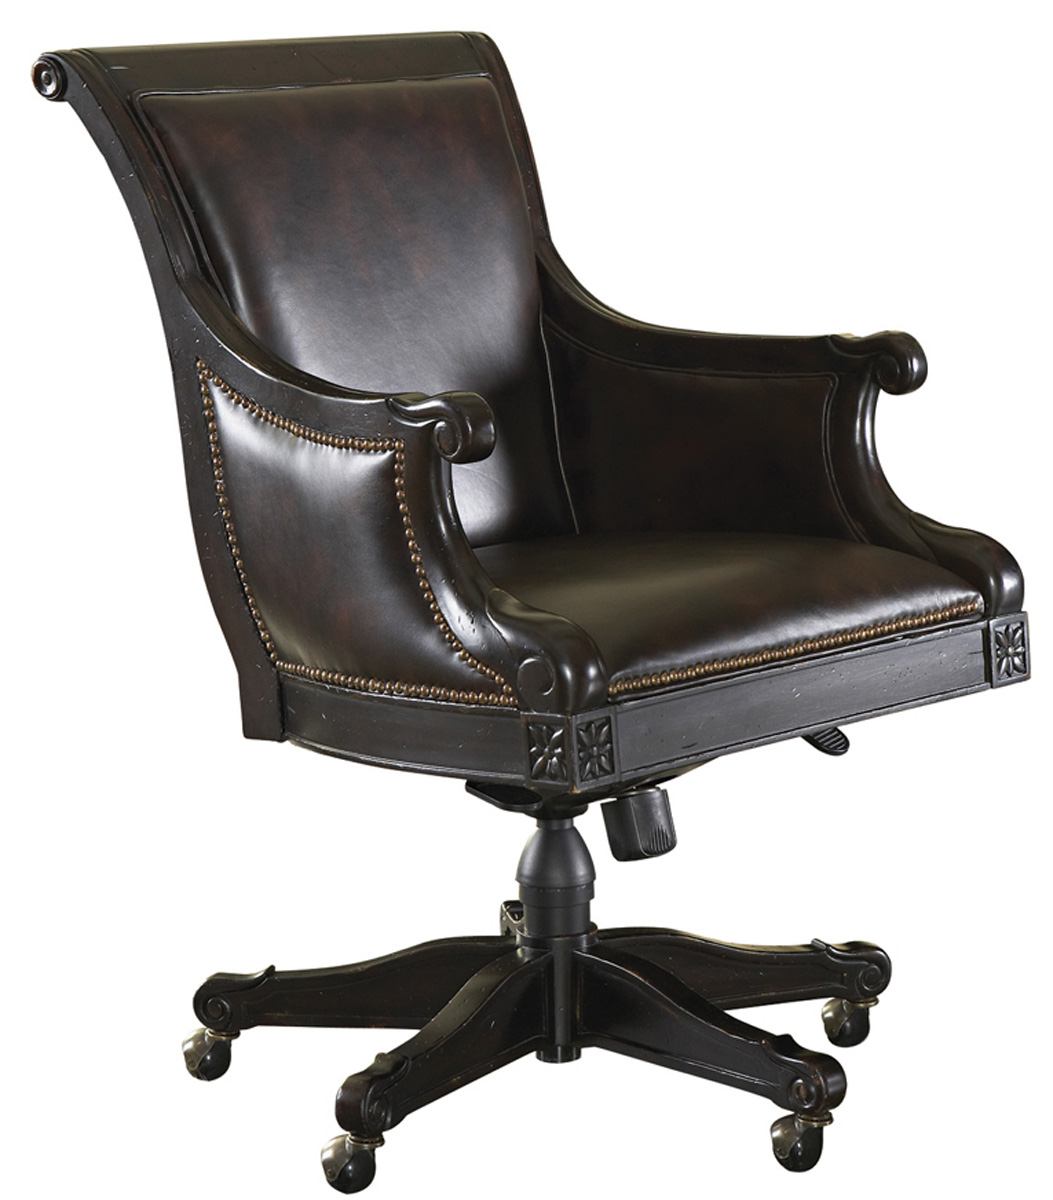 ADMIRALTY DESK CHAIR